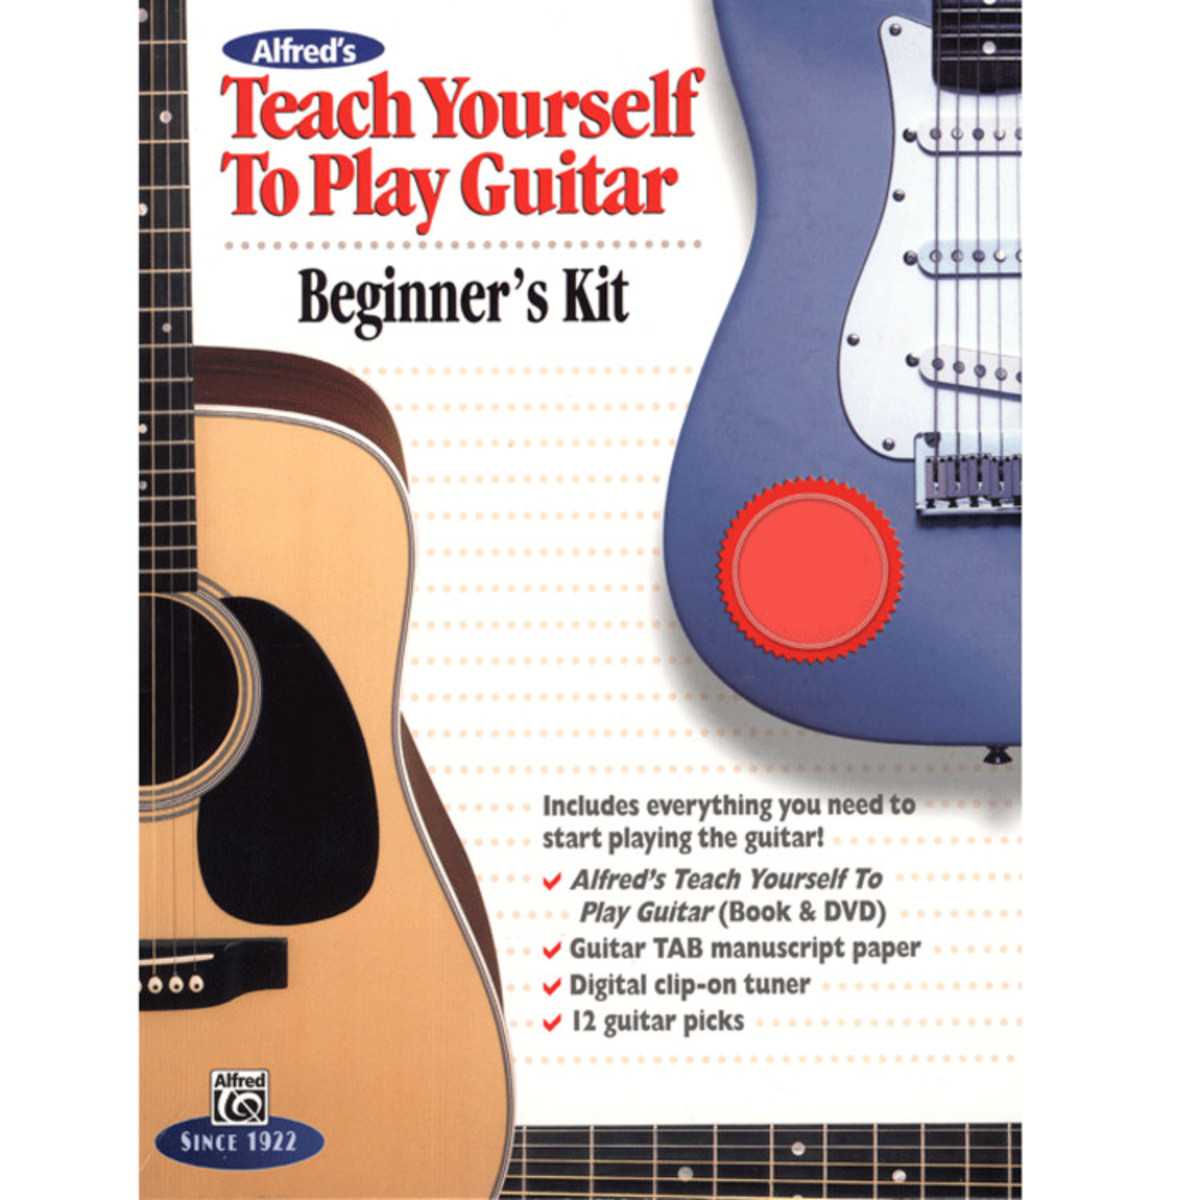 Alfreds teach yourself to play guitar beginners kit na gear4music alfreds teach yourself to play guitar beginners kit loading zoom ccuart Images